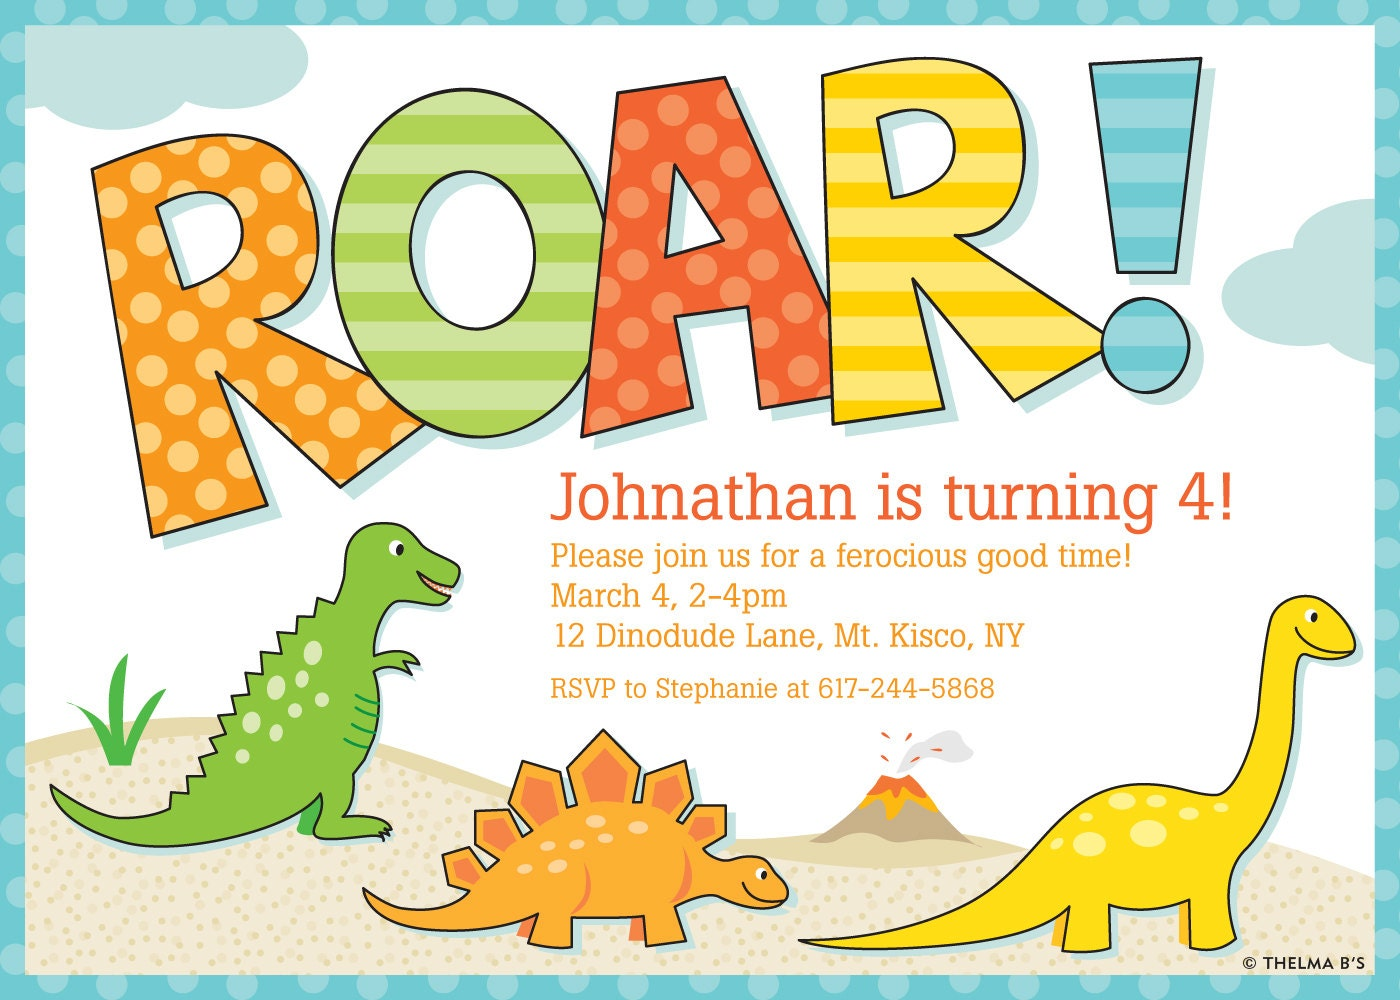 Lively image intended for printable dinosaur birthday invitations